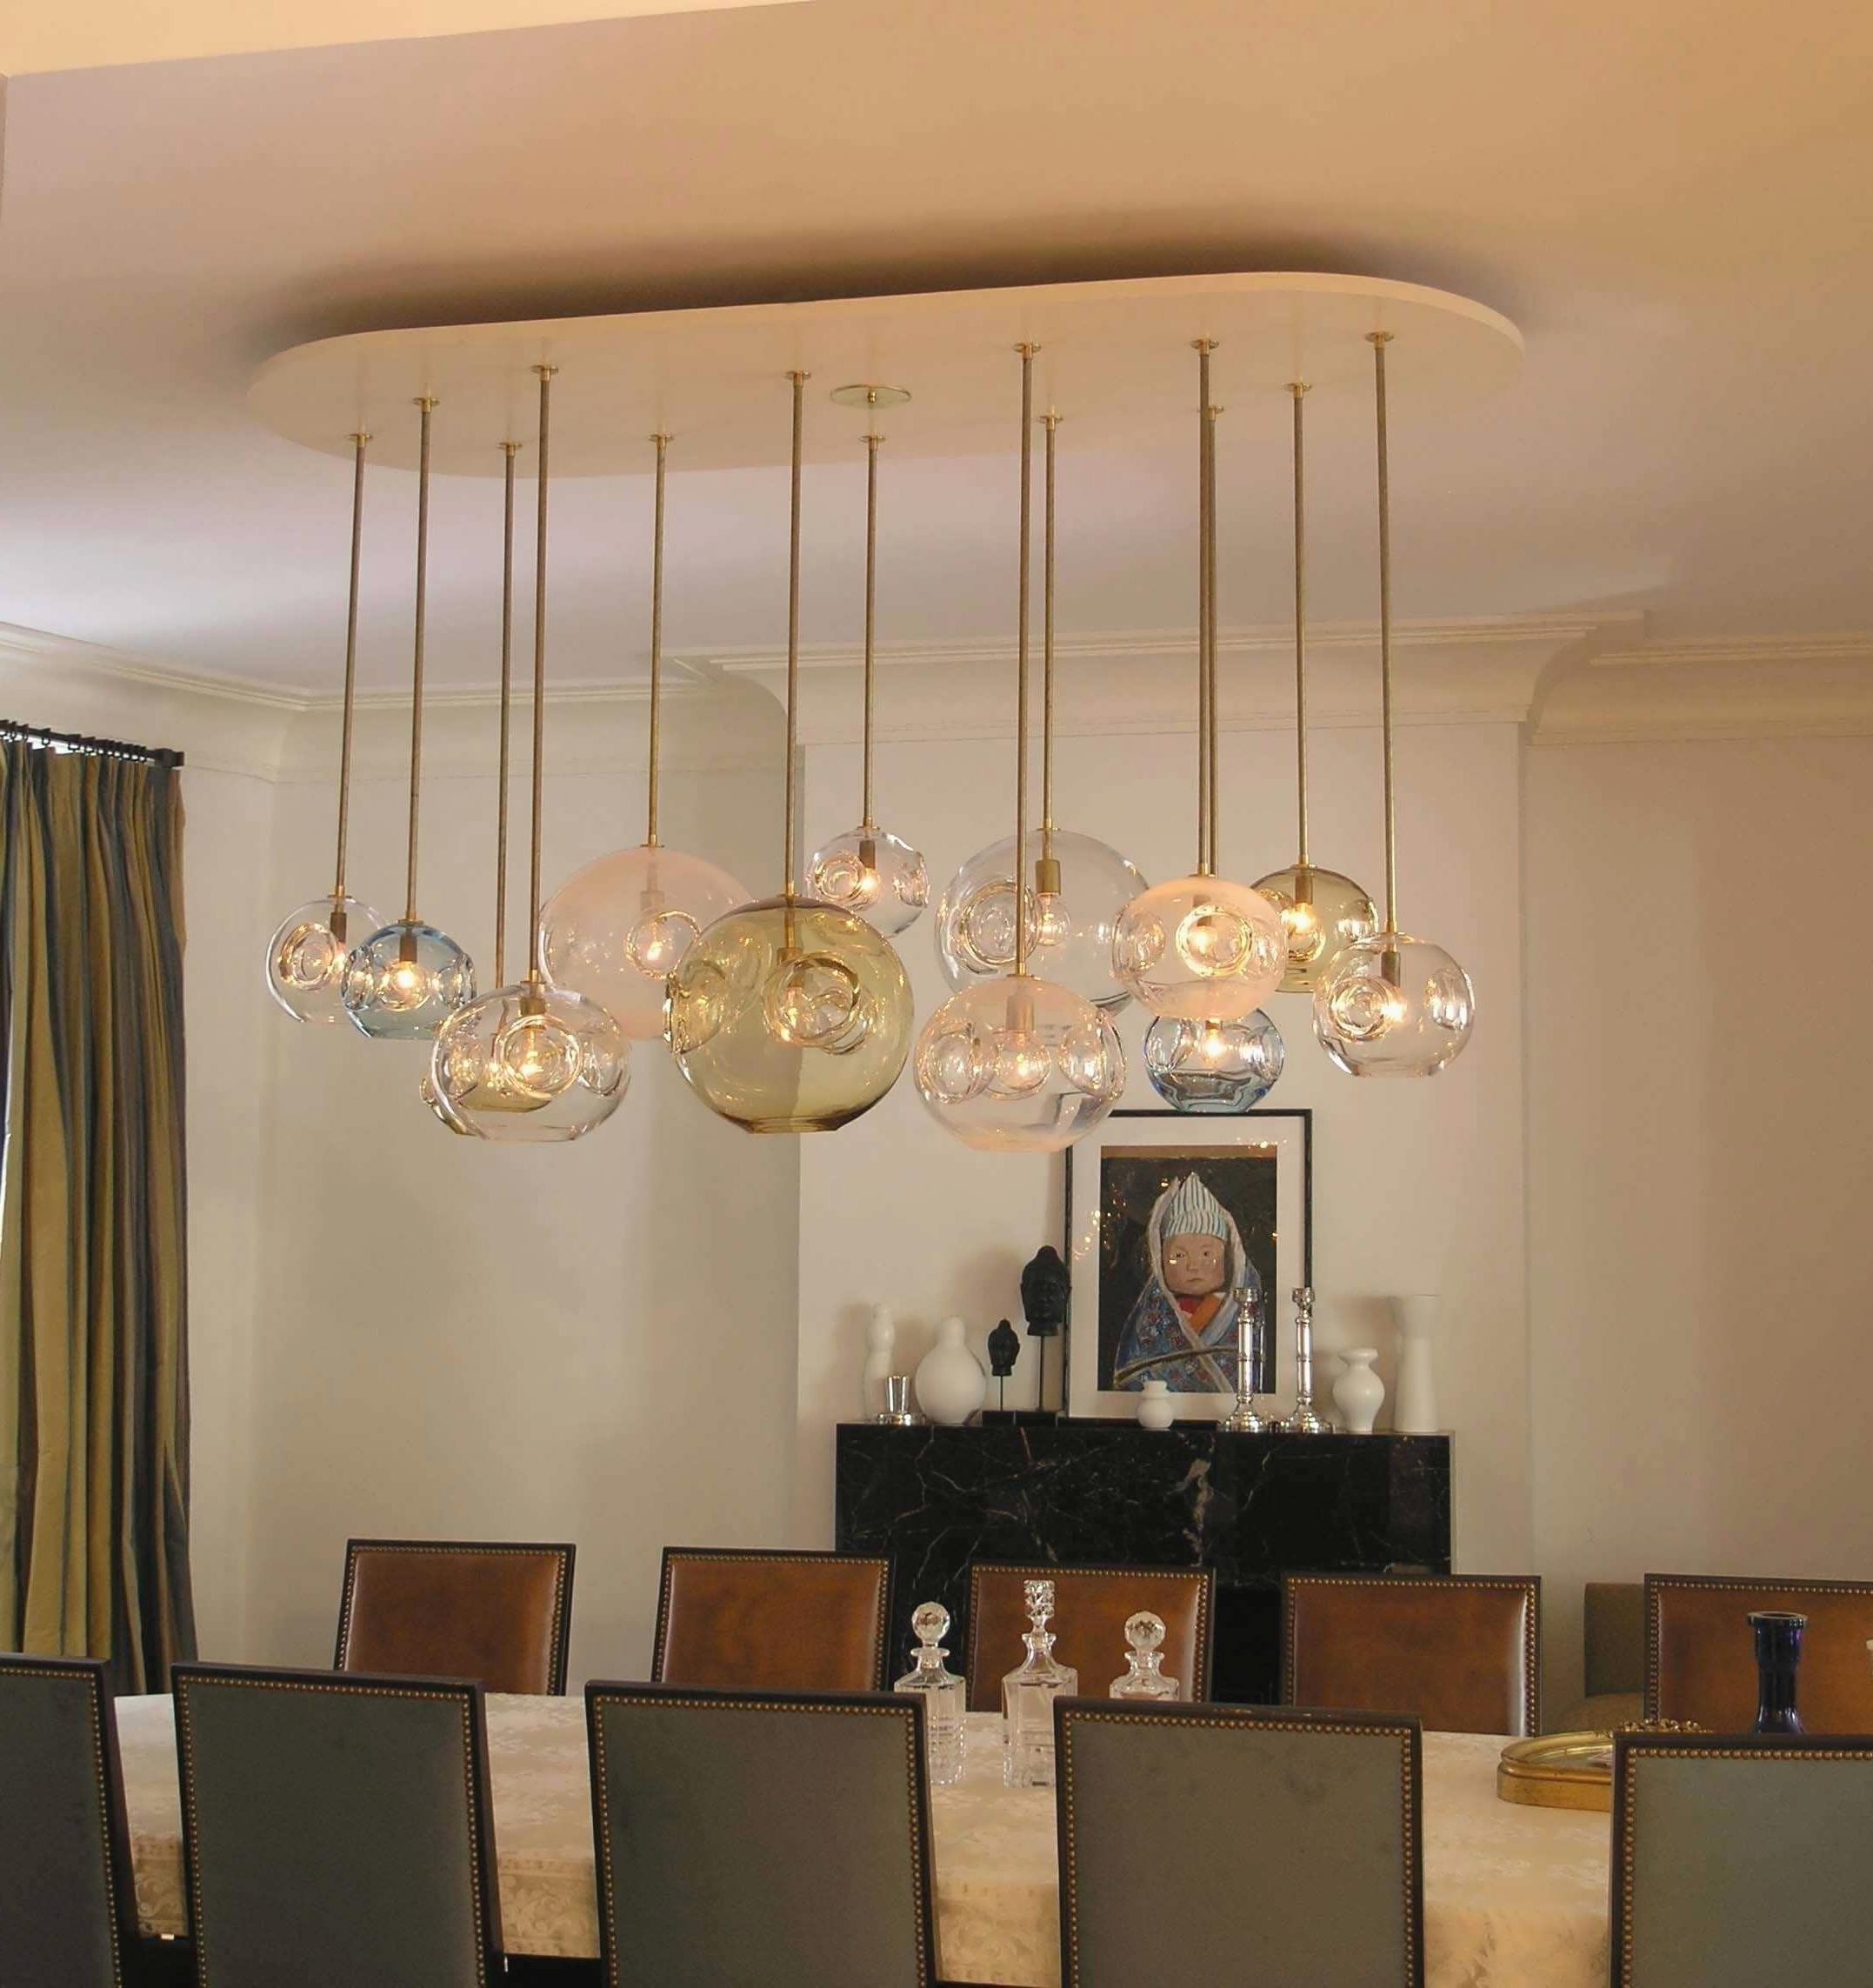 2018 Trendy Chandeliers Regarding Trendy Dining Room Chandeliers Trendy Modern Dining Room Lamps (View 1 of 20)